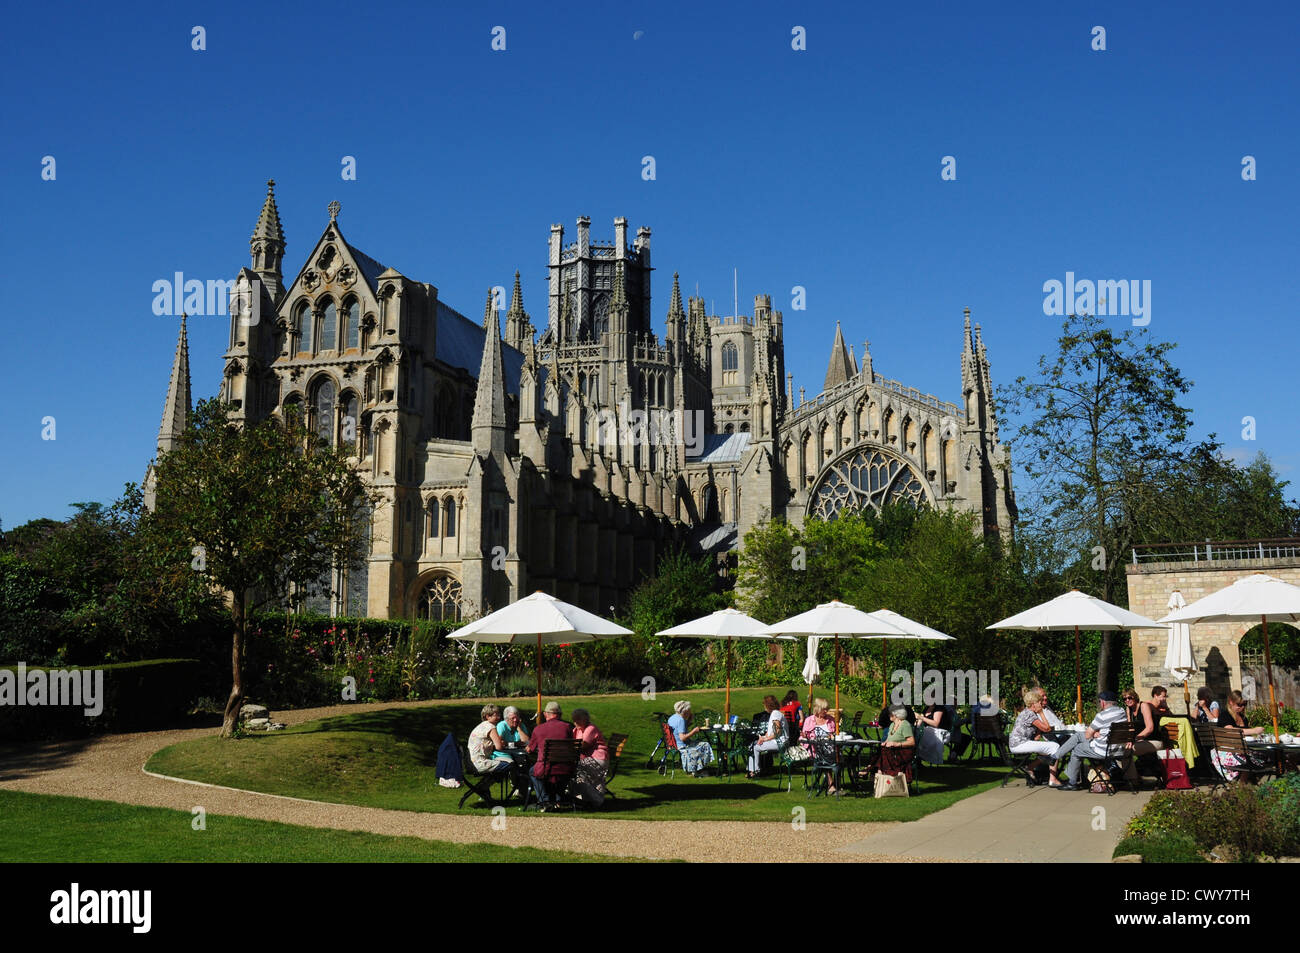 Moon over Ely Cathedral and The Almonry restaurant gardens, Ely, Cambridgeshire, England, UK Stock Photo